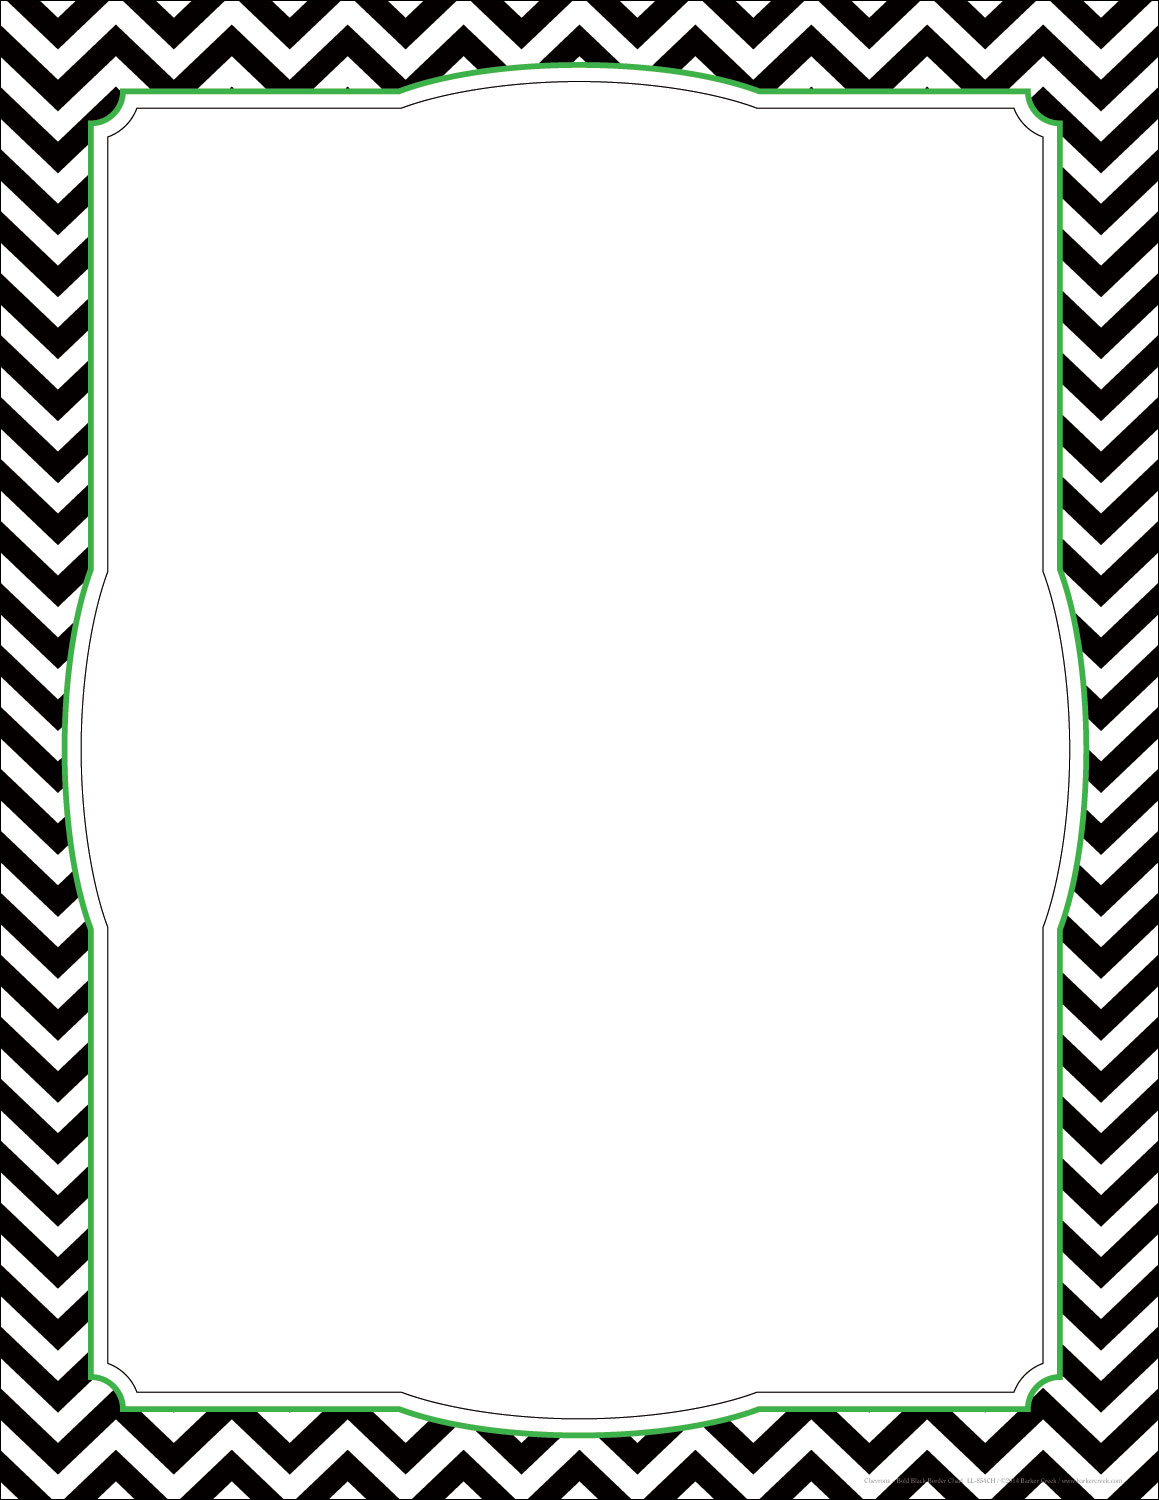 1159x1500 Border Clipart Download Free